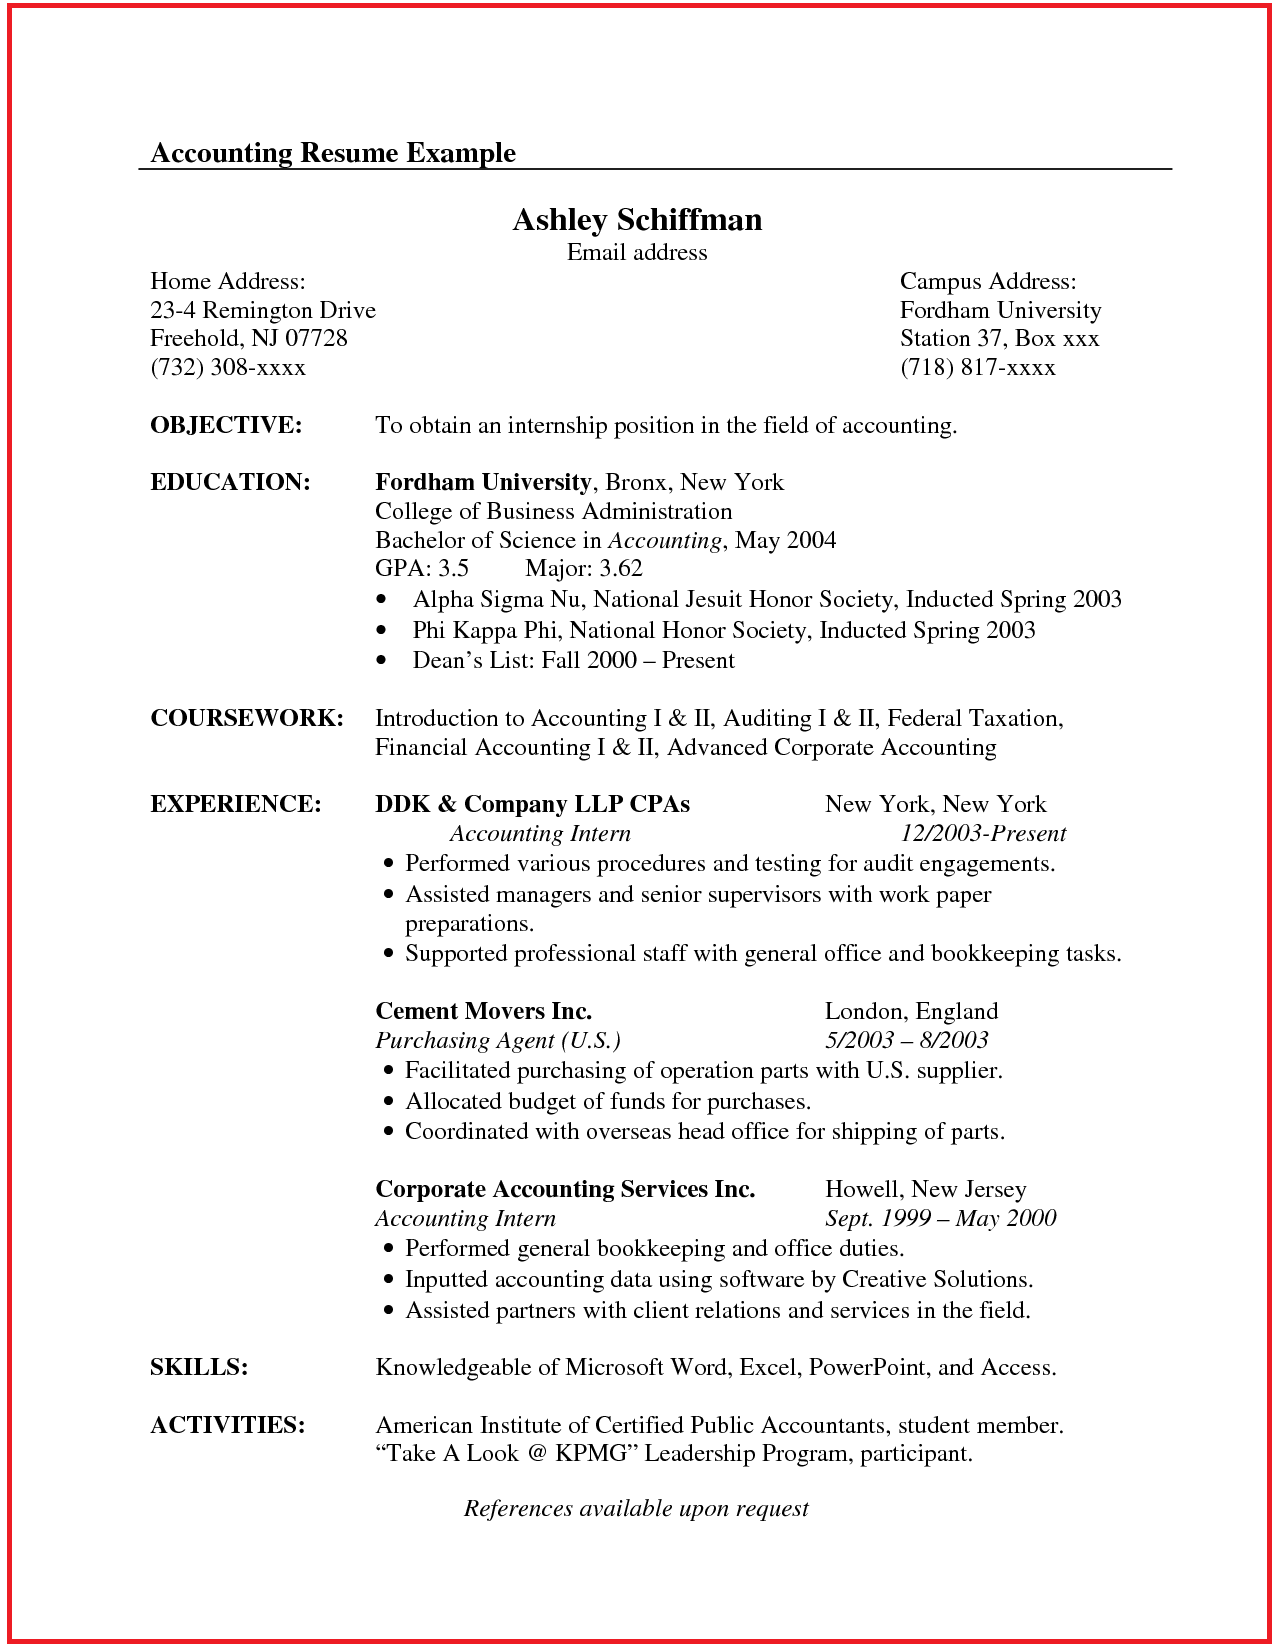 accountant resume sample canada httpwwwjobresumewebsiteaccountant. Resume Example. Resume CV Cover Letter